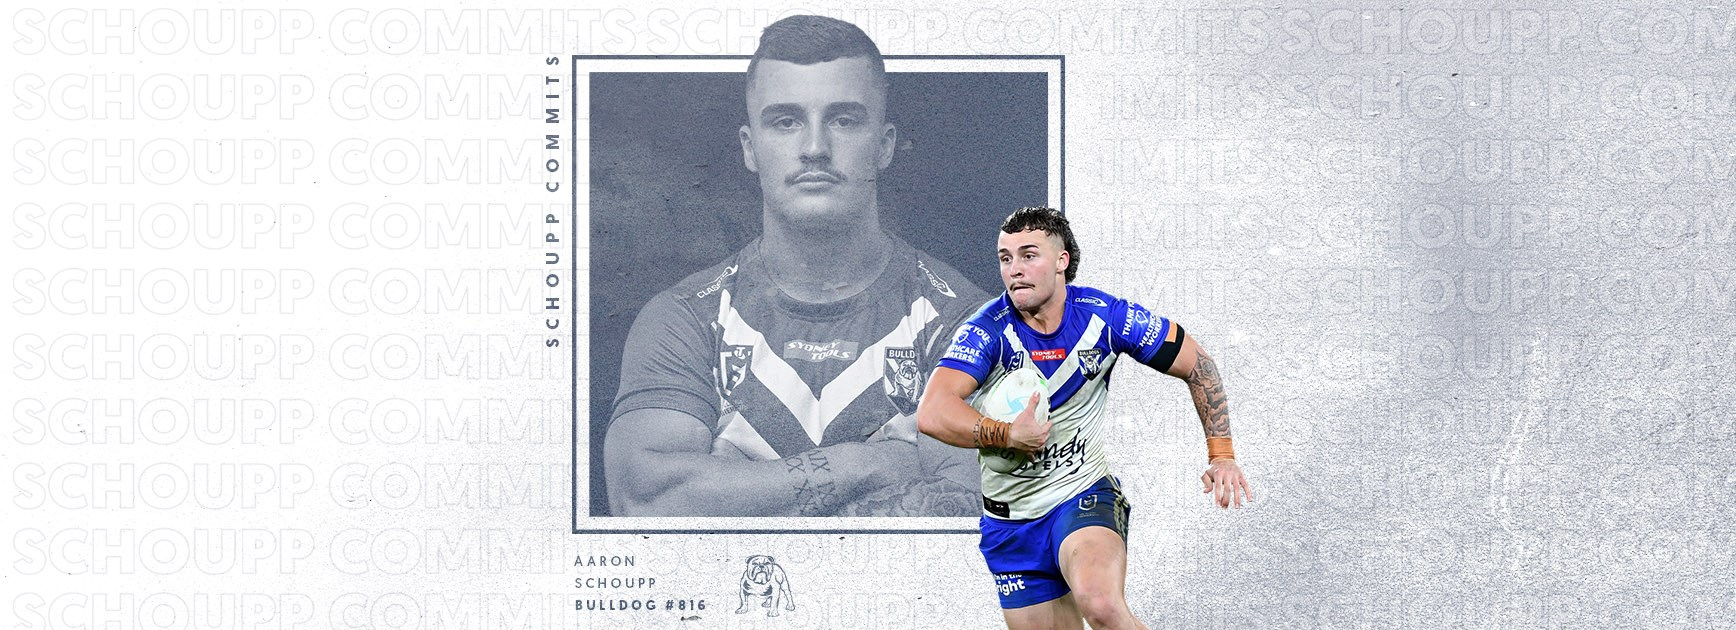 Aaron Schoupp re-signs with the Bulldogs for a further three years